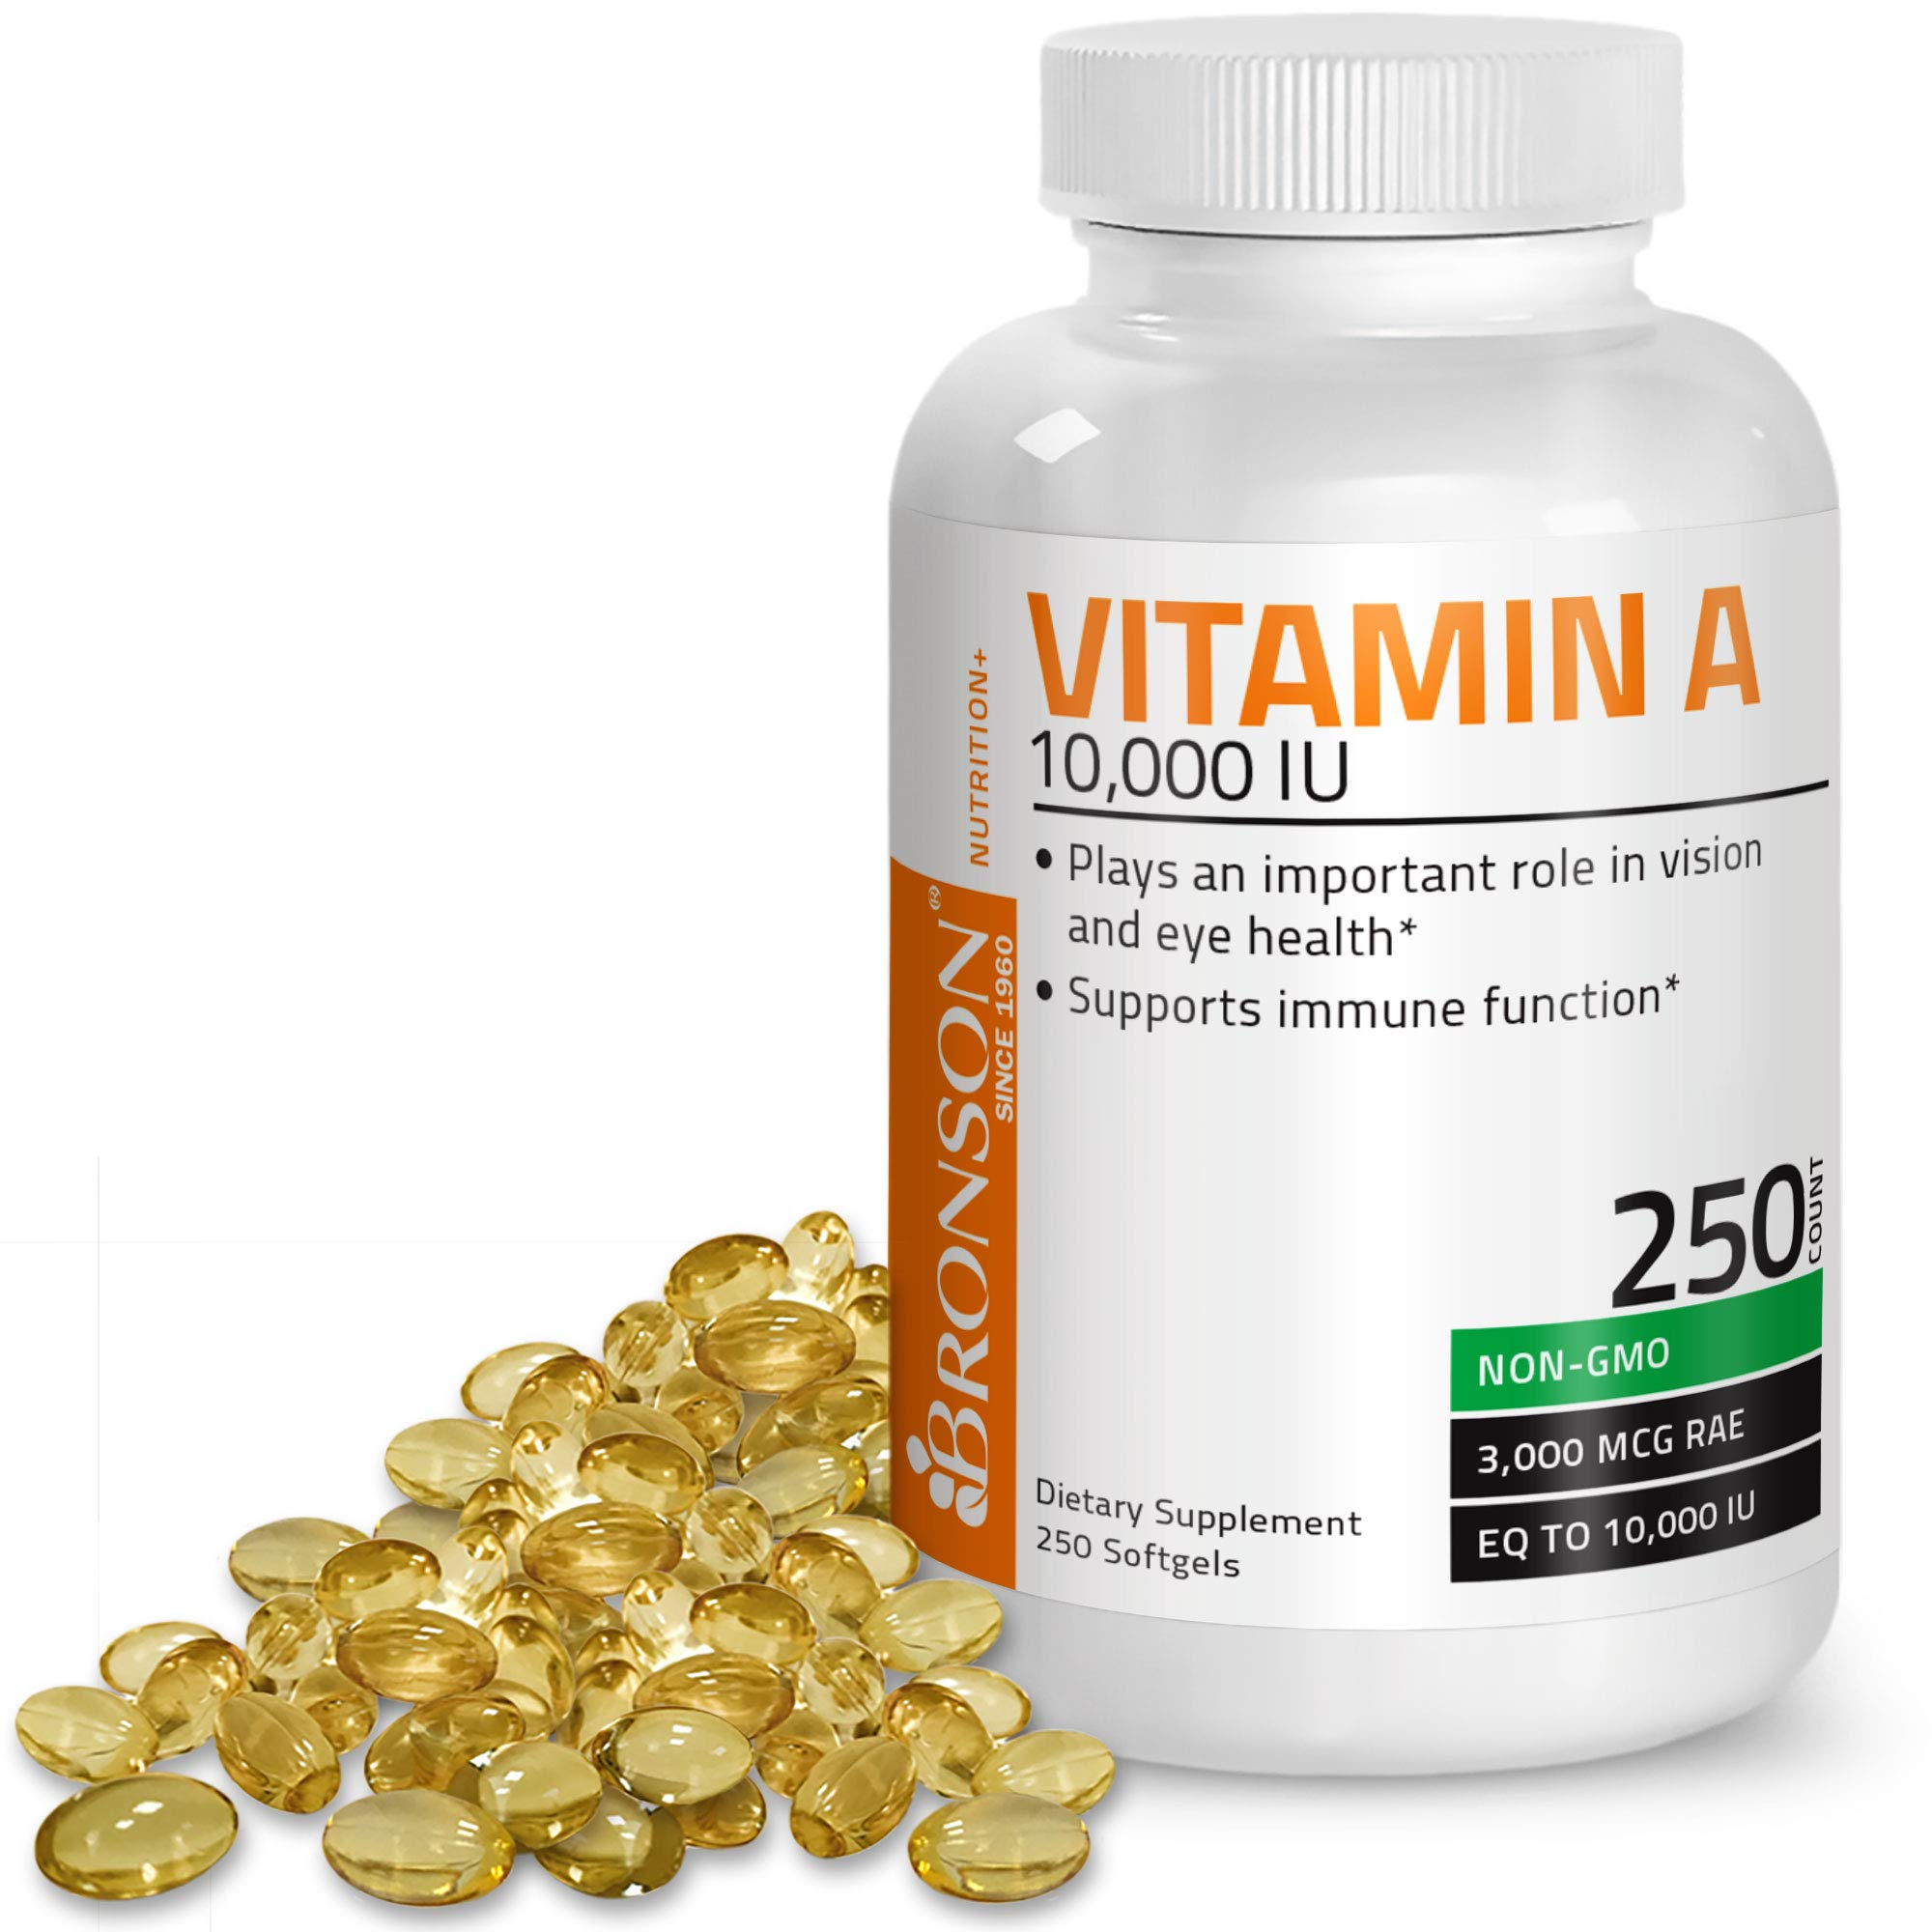 Bronson Vitamin A 10,000 IU Premium Non-GMO Formula Supports Healthy Vision & Immune System and Healthy Growth & Reproduction, 250 Softgels